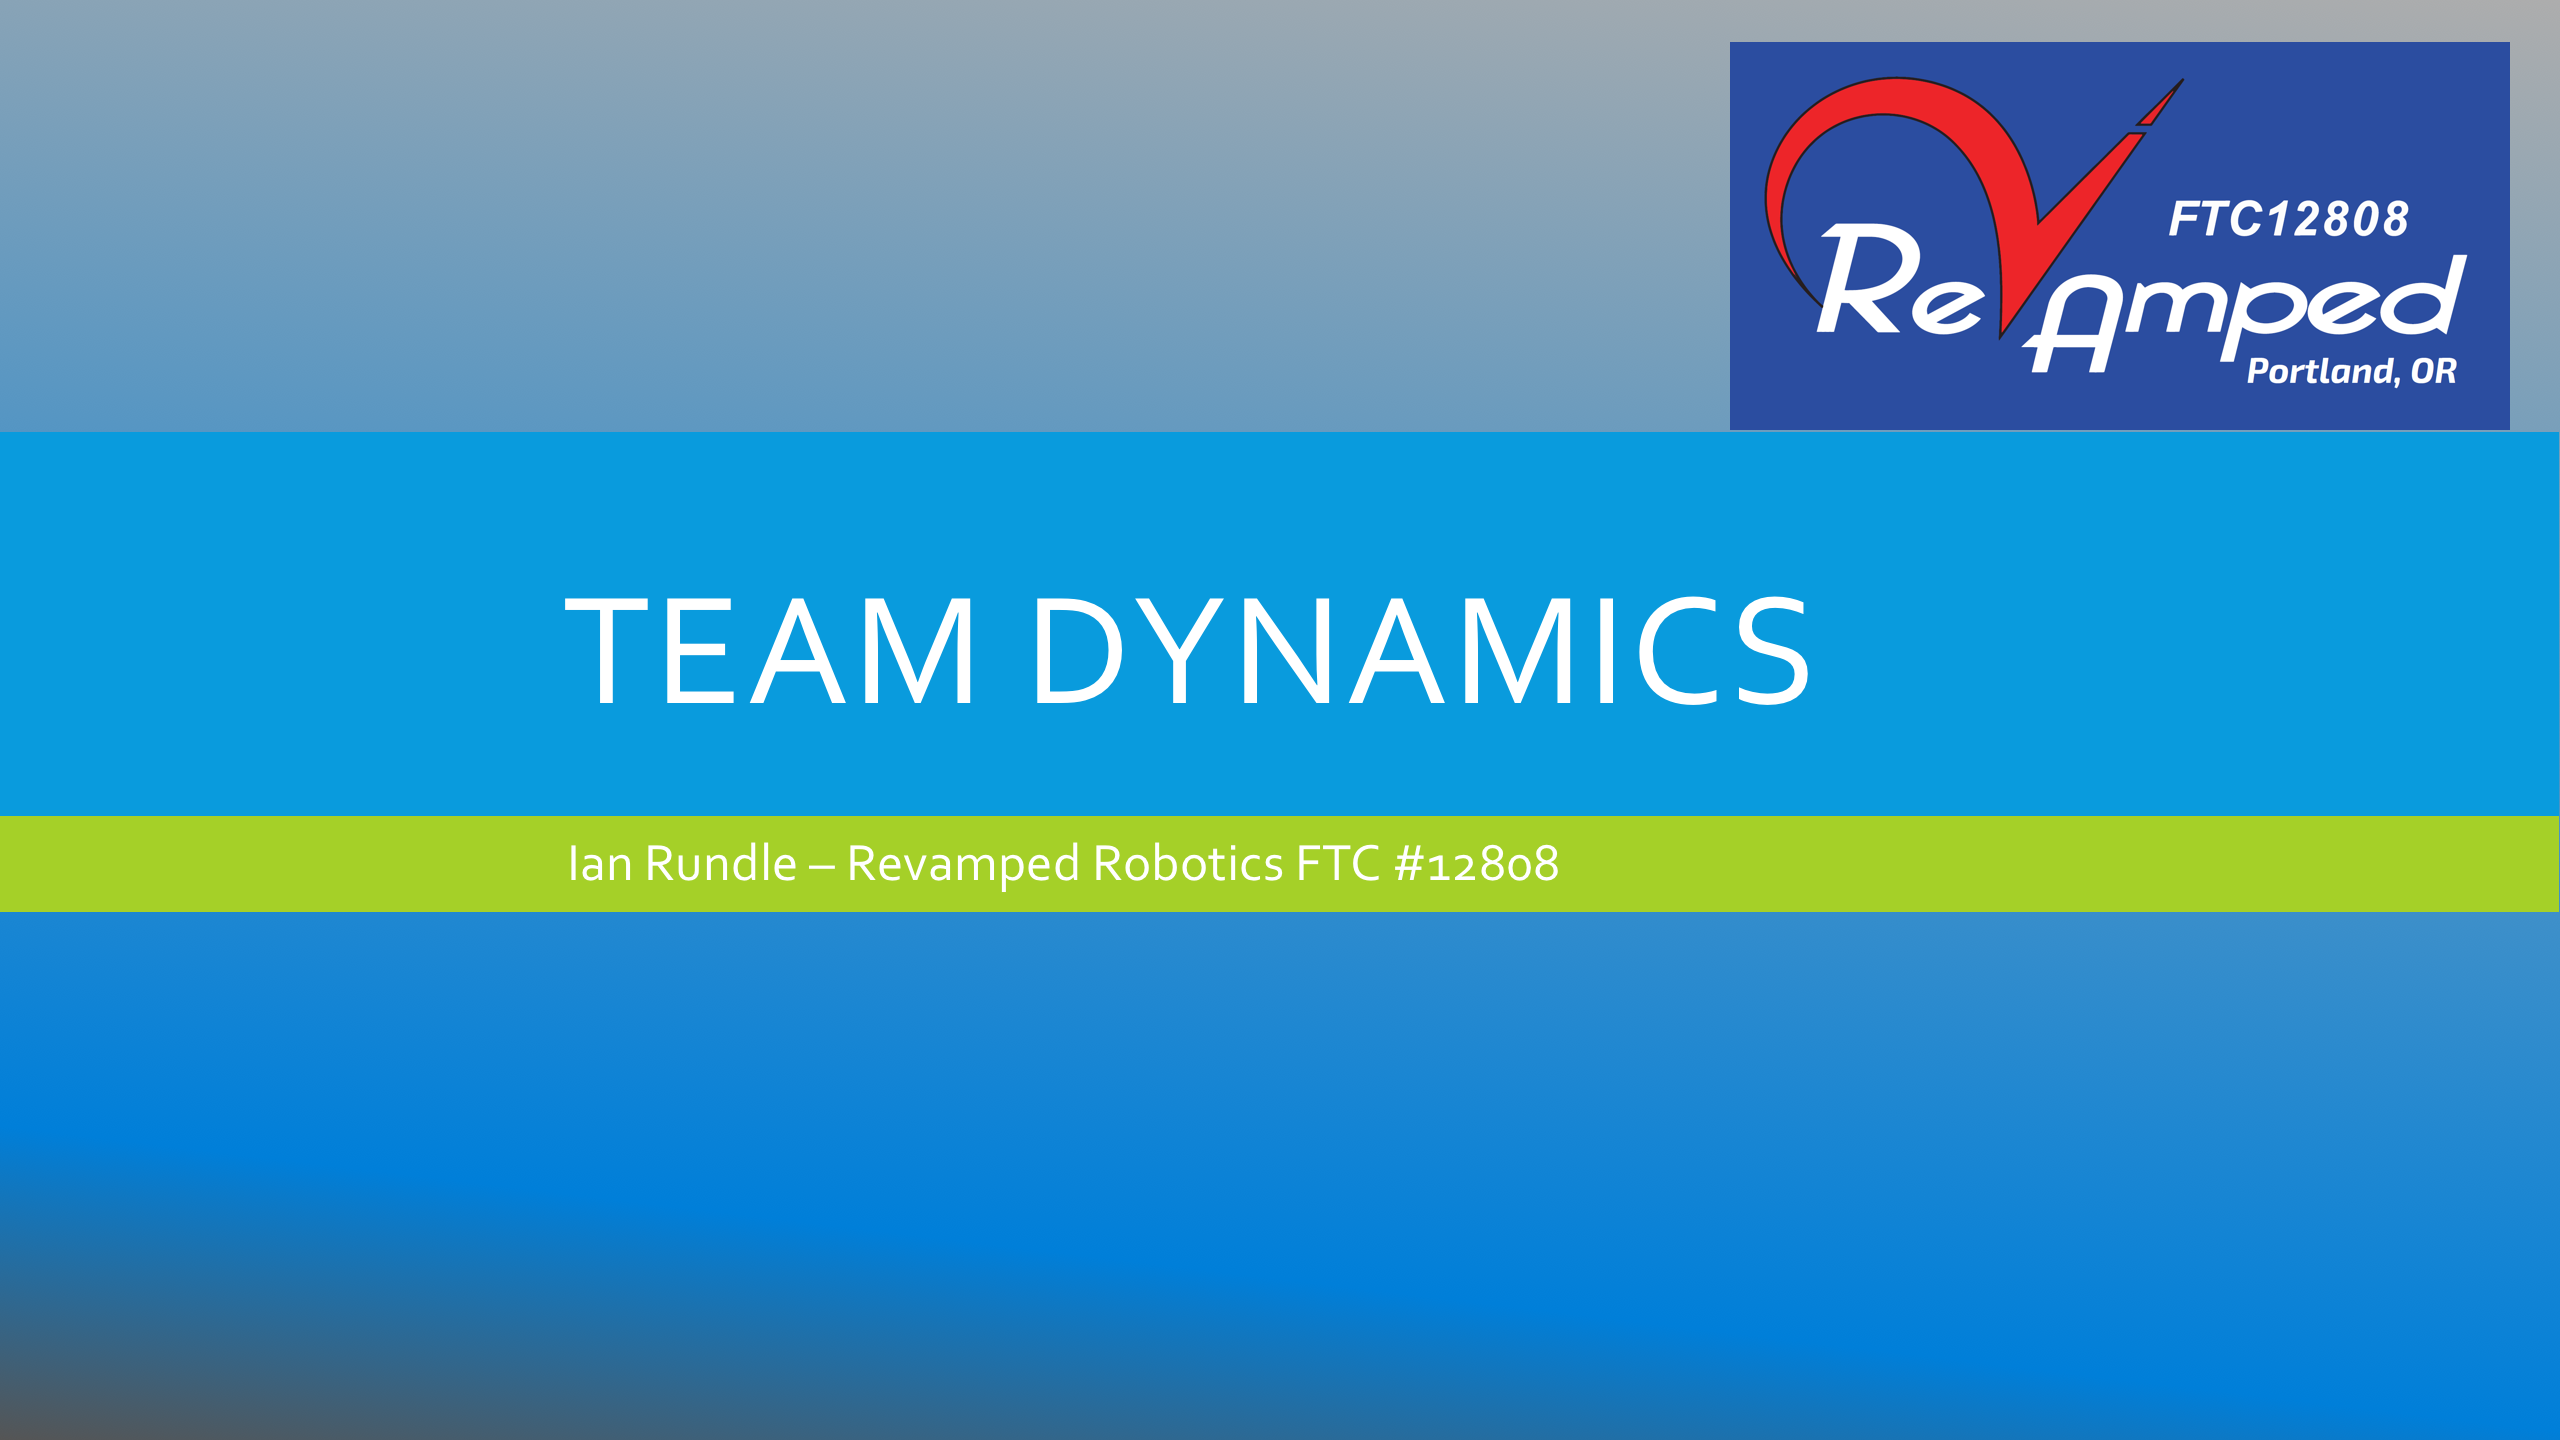 Team Dynamics by RevAmped Robotics